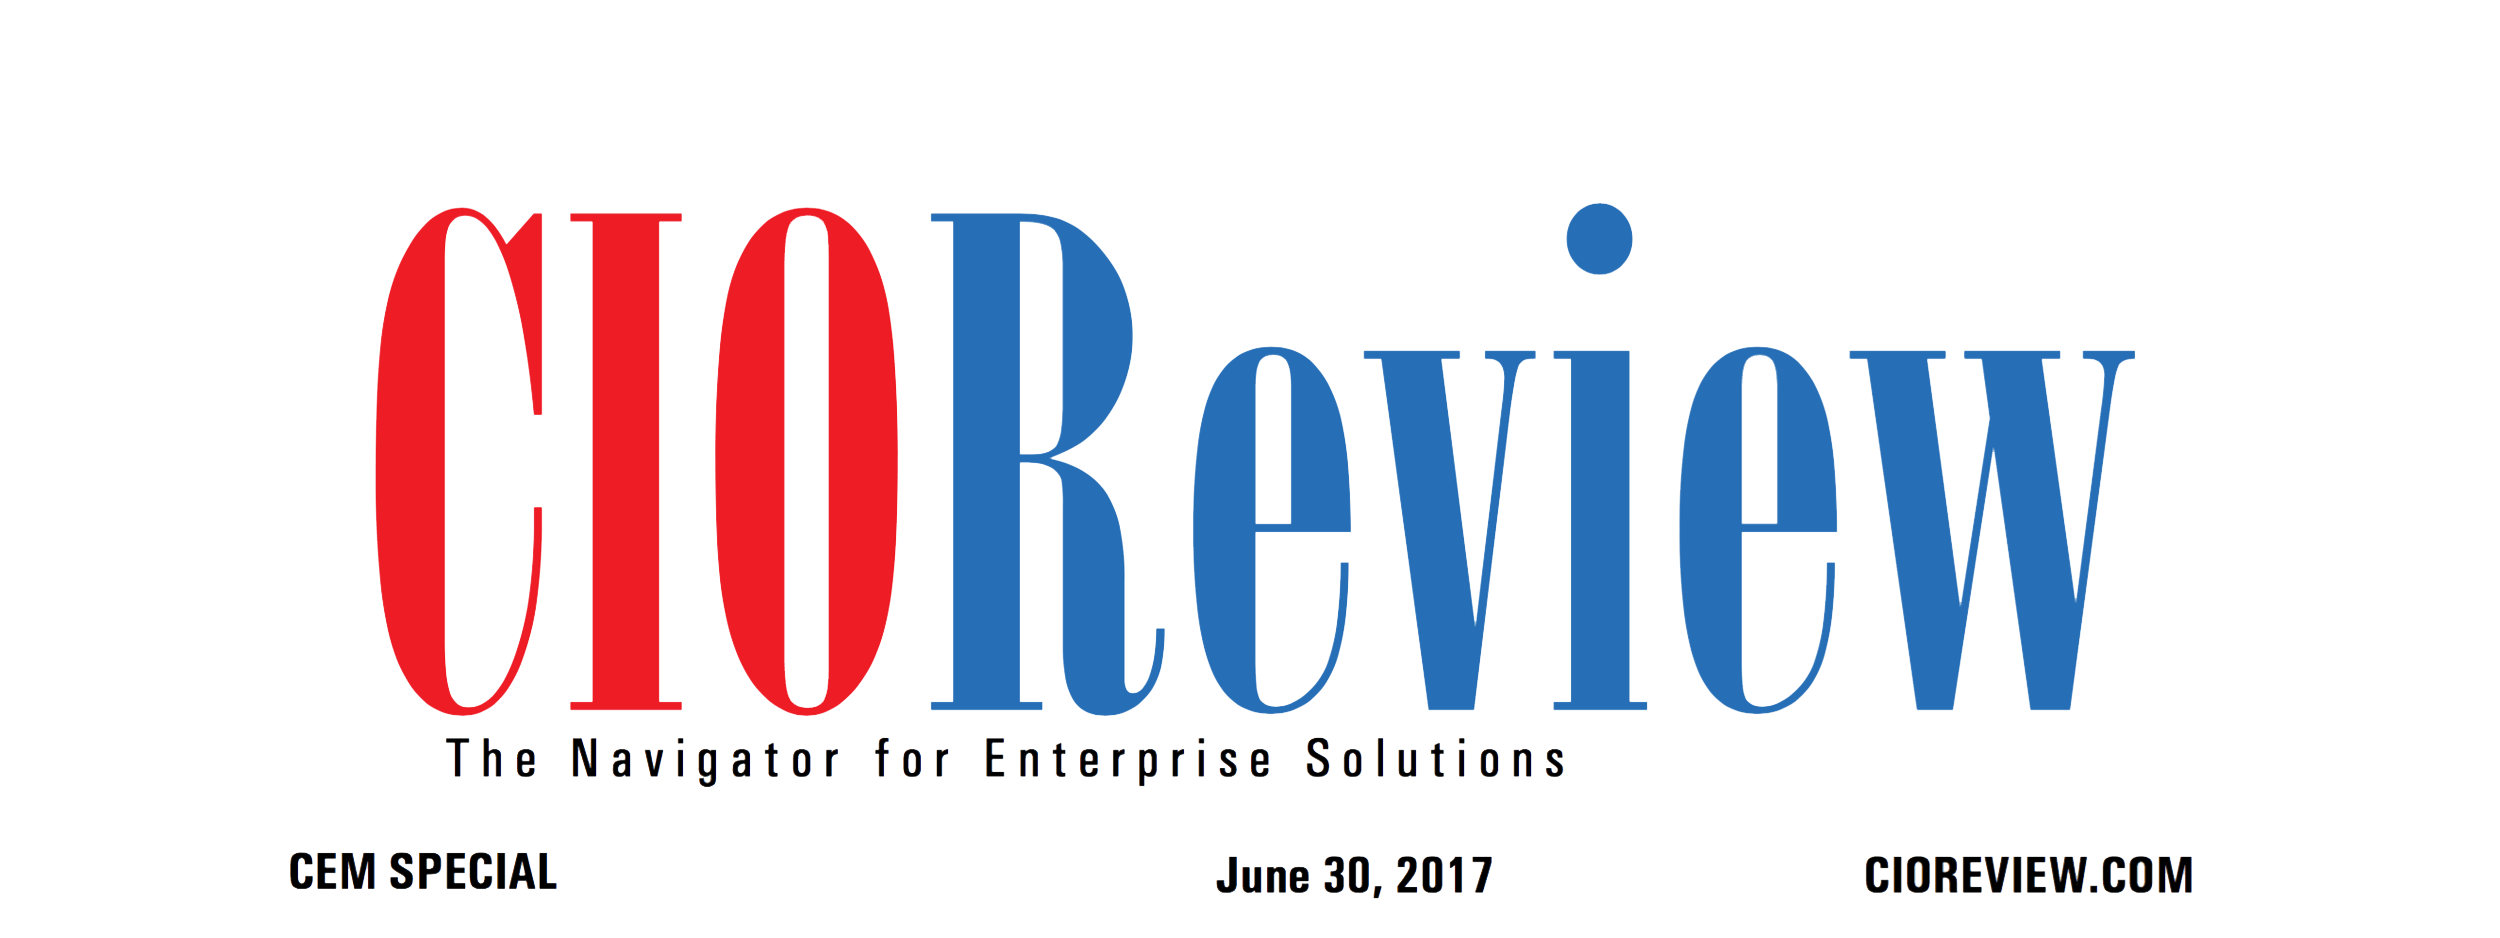 CIO Review Best CEM Companies of 2017